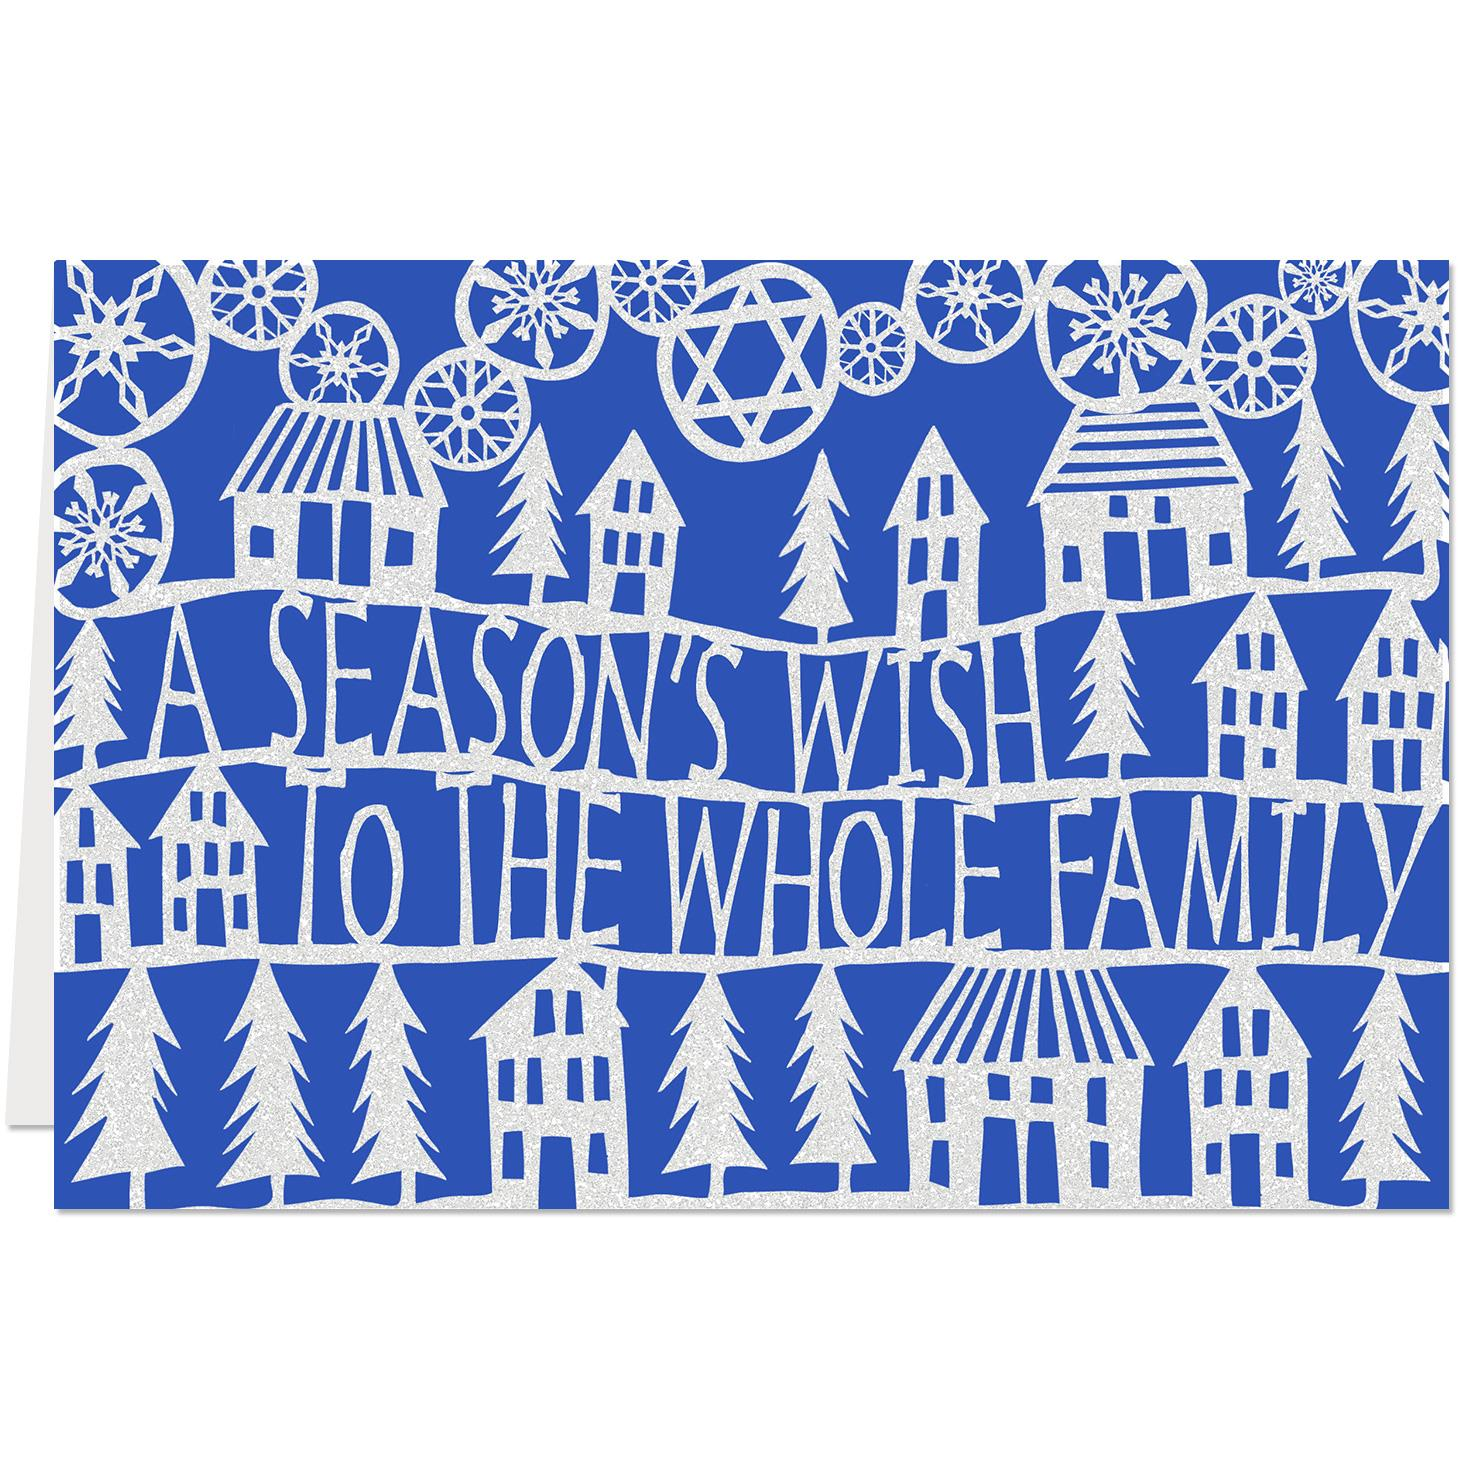 A Seasons Wish To The Whole Family Christmas And Hanukkah Card